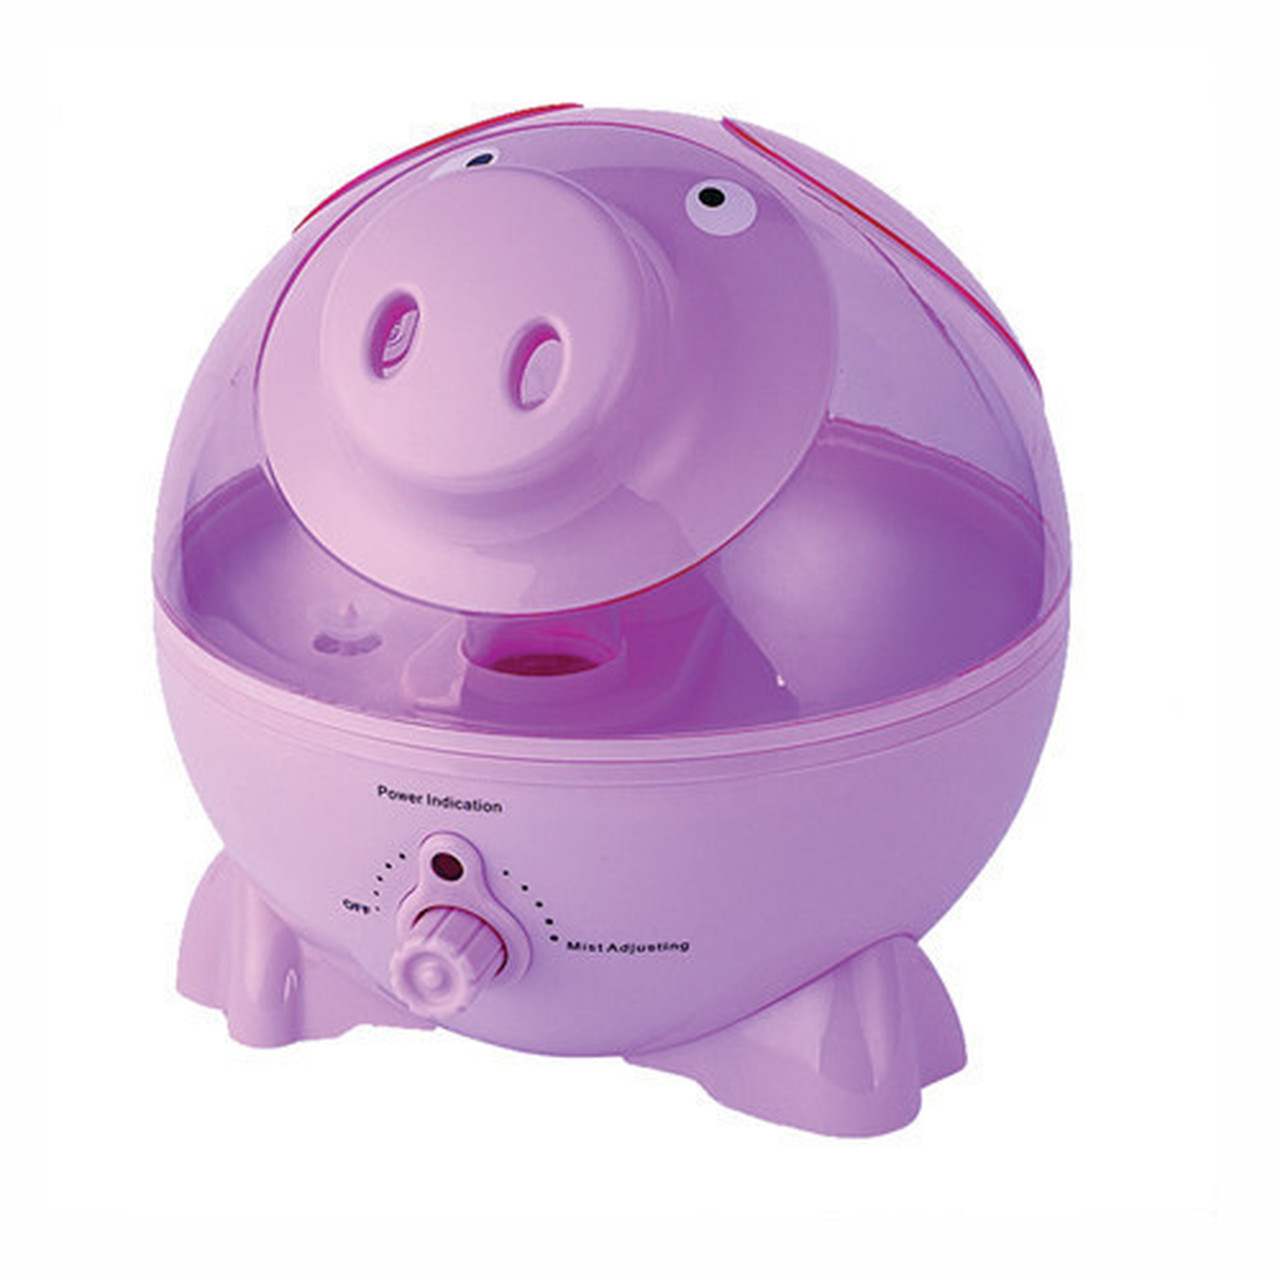 SPT SU-3751 Ultrasonic Pig-Shaped Humidifier